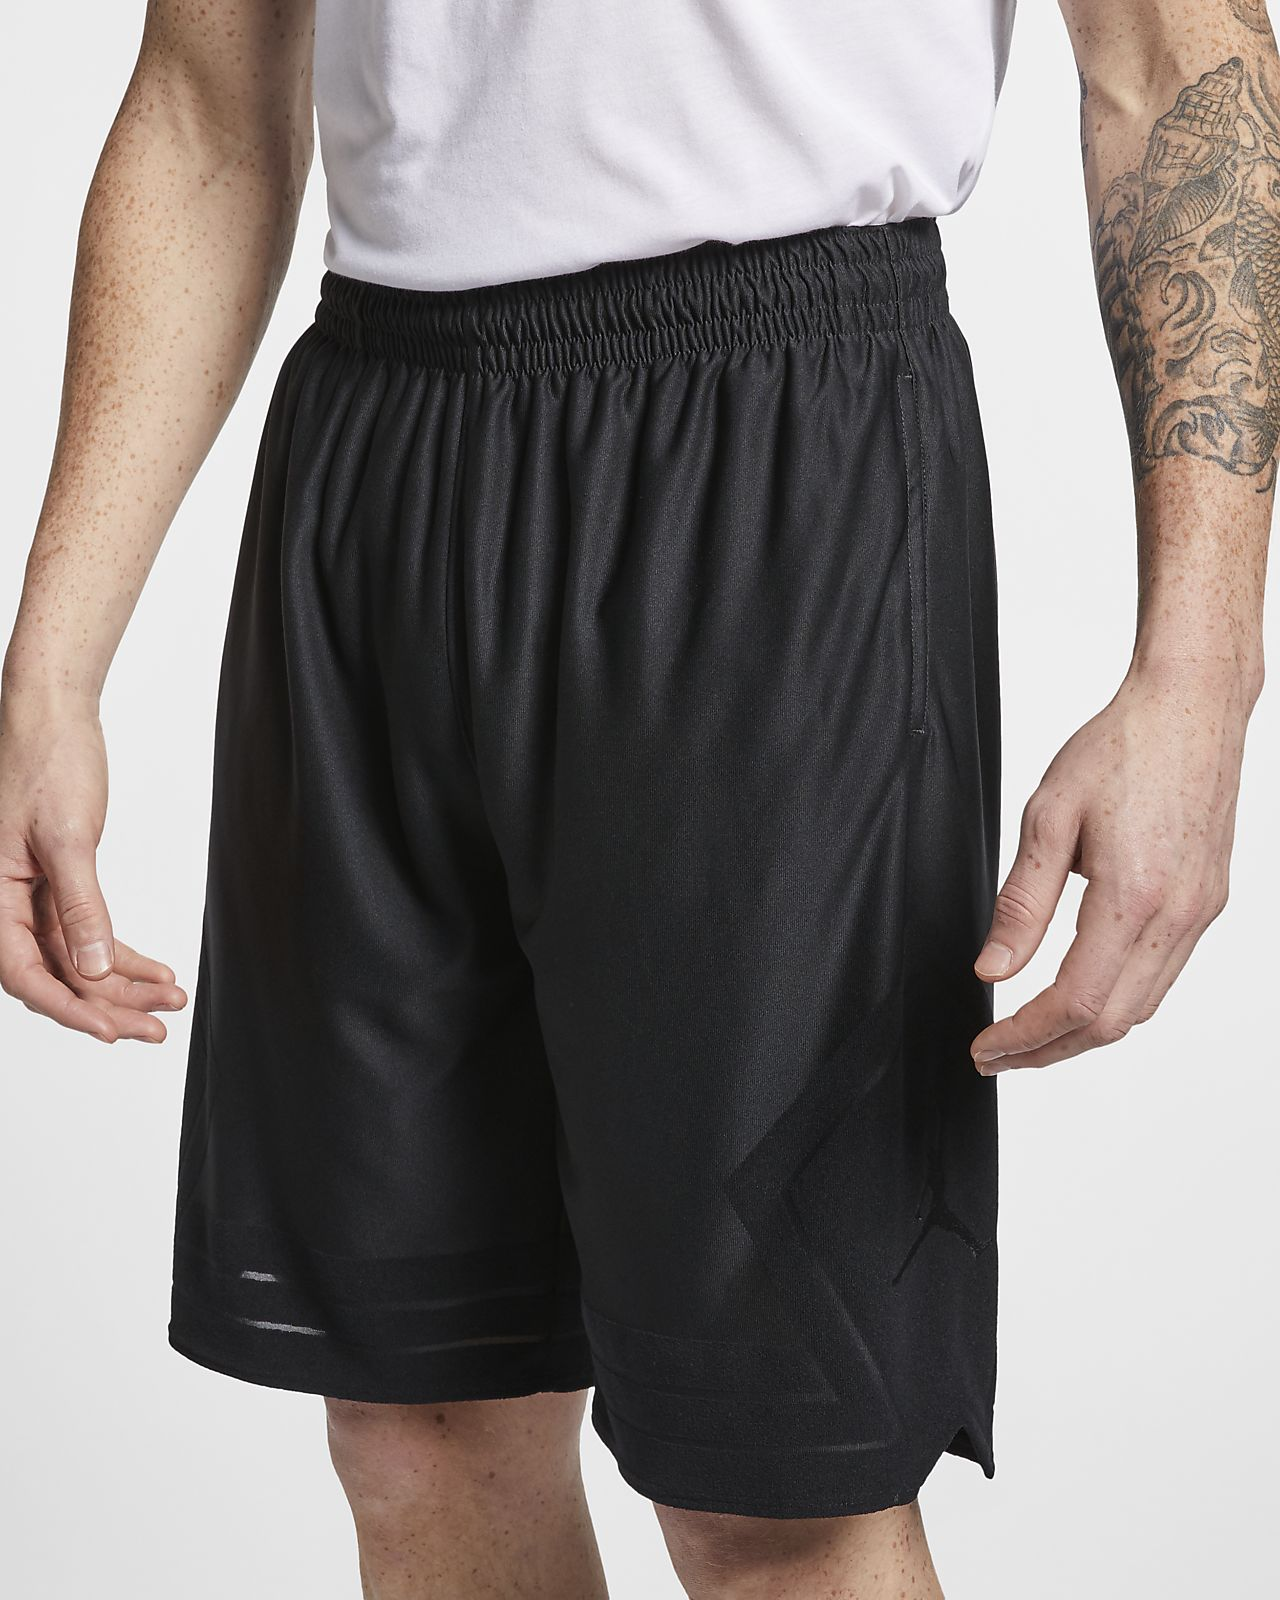 Jordan Game Men's Basketball Shorts